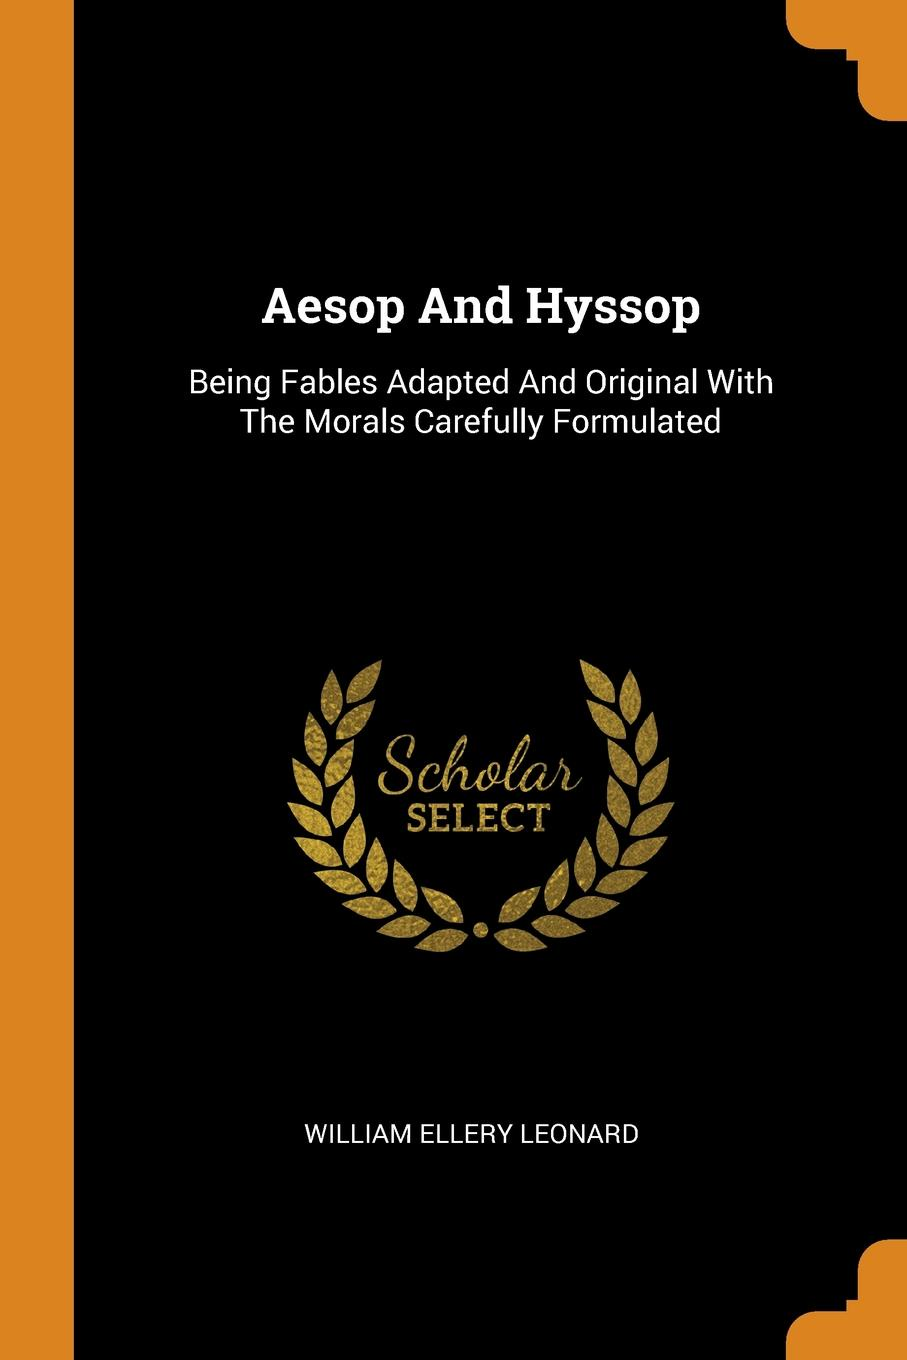 William Ellery Leonard Aesop And Hyssop. Being Fables Adapted And Original With The Morals Carefully Formulated